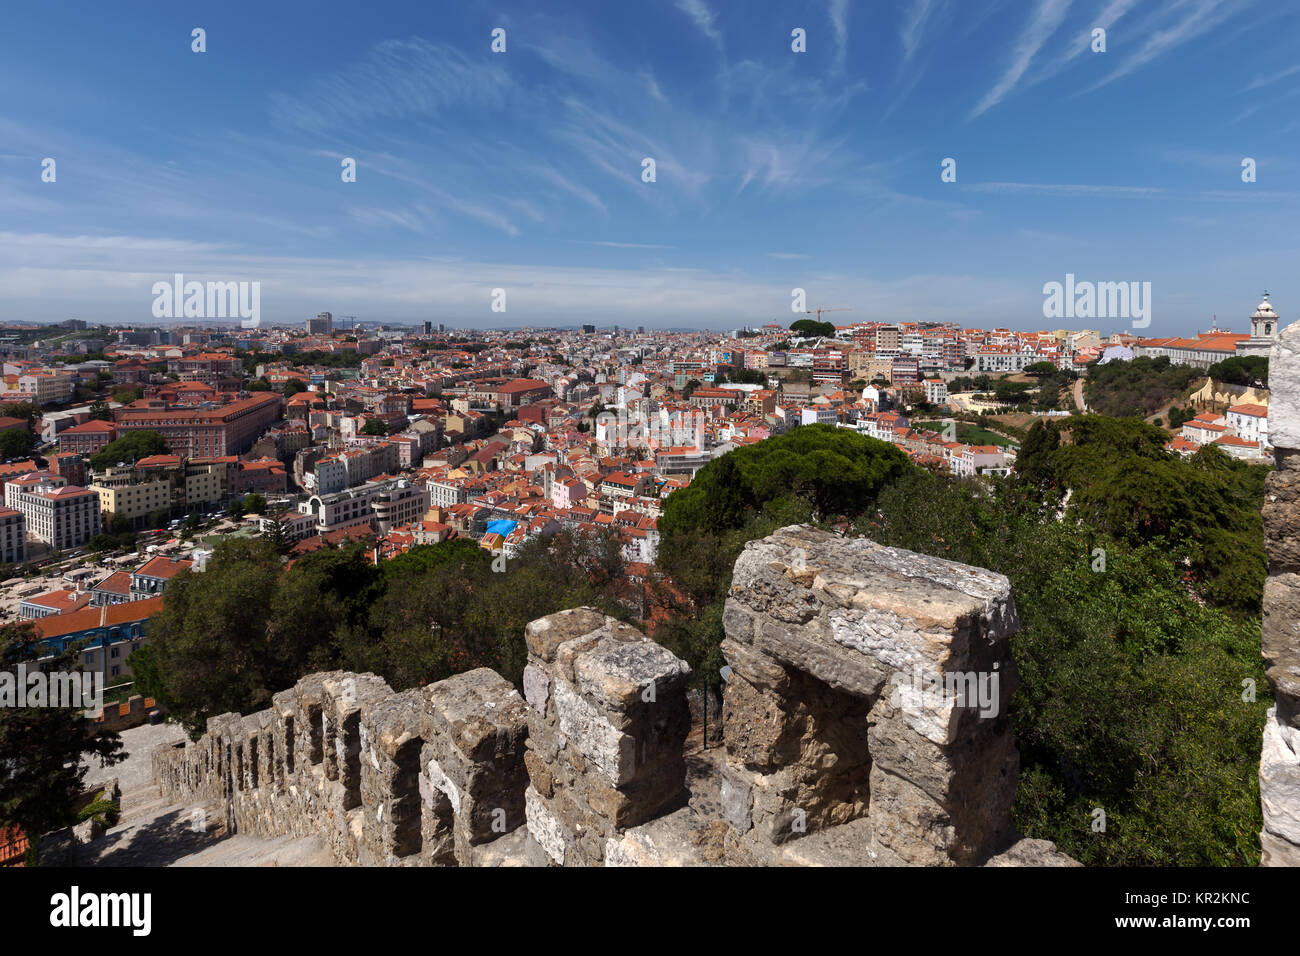 City of Lisbon, Portugal, seen from Sao Jorge Castle. The castle, constructed during the Moorish occupation of Lisbon, - Stock Image